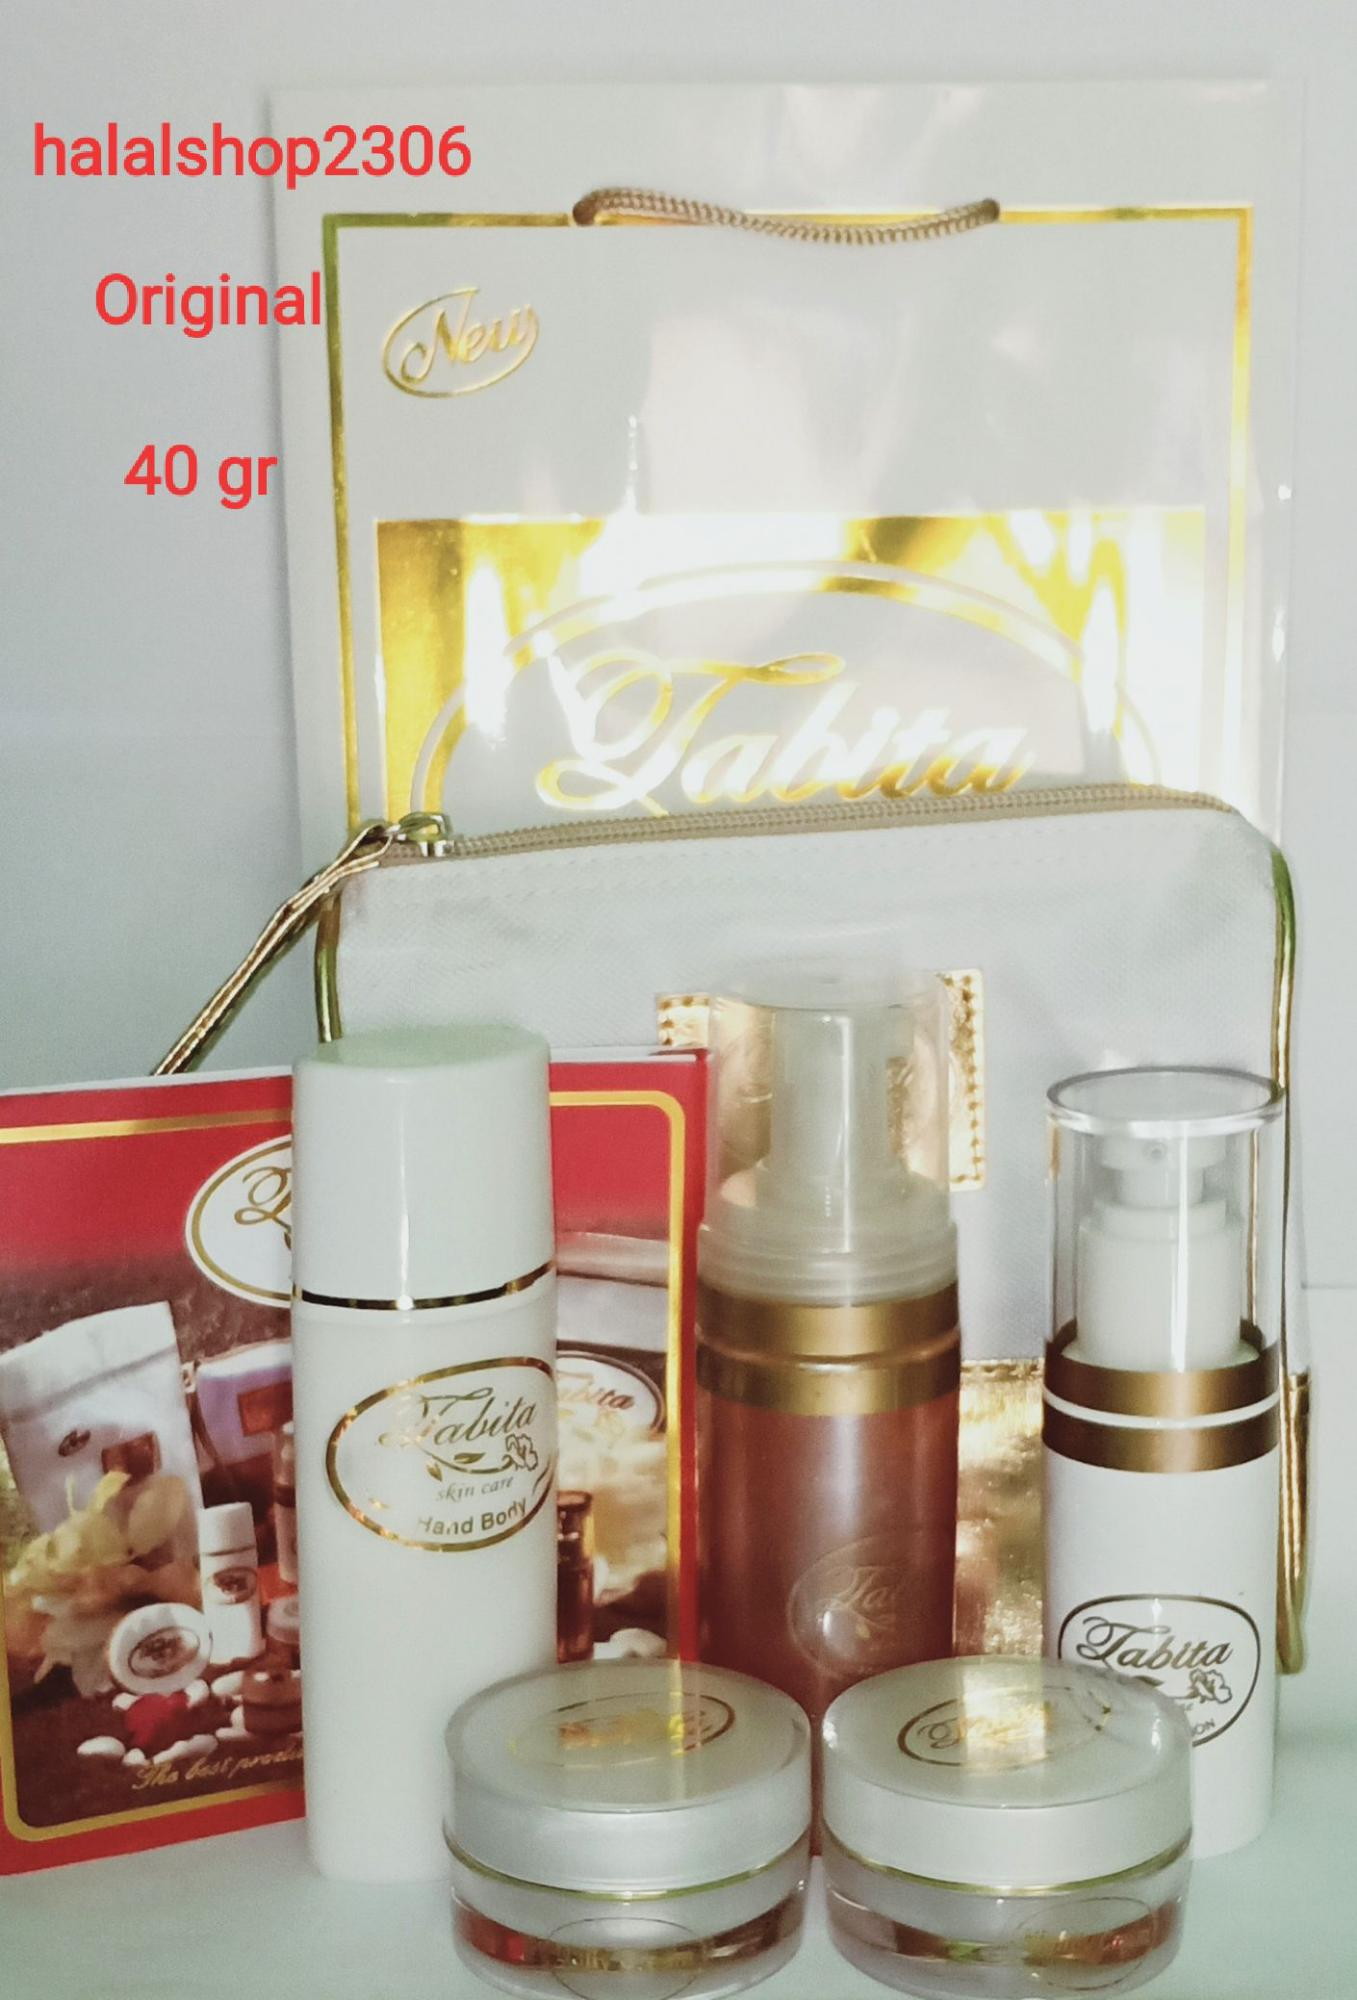 Paket Tabita skin care Exclusive set 40 gr 5 in 1 original free hand and body